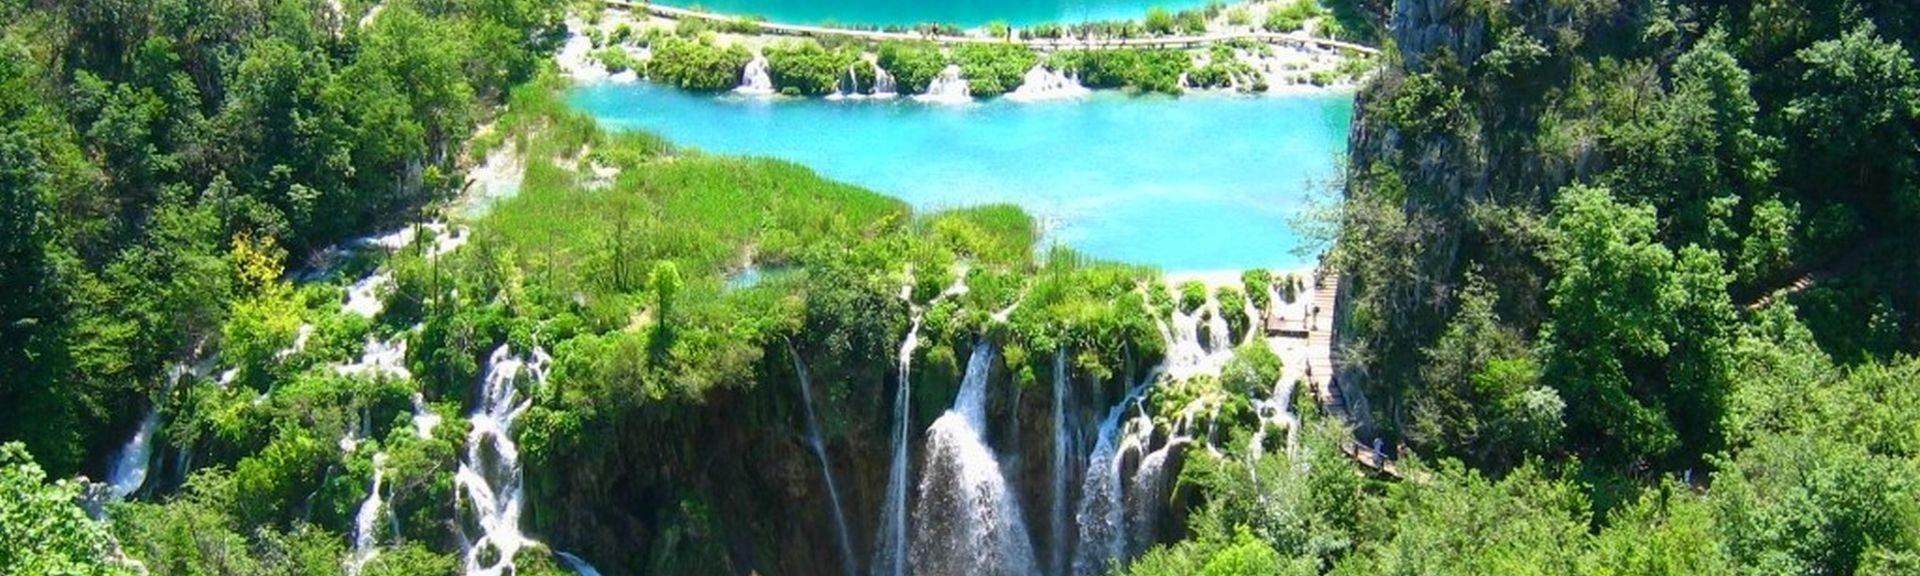 Plitvice Lakes National Park - Entrance 3, Plitvica Selo, Croatia